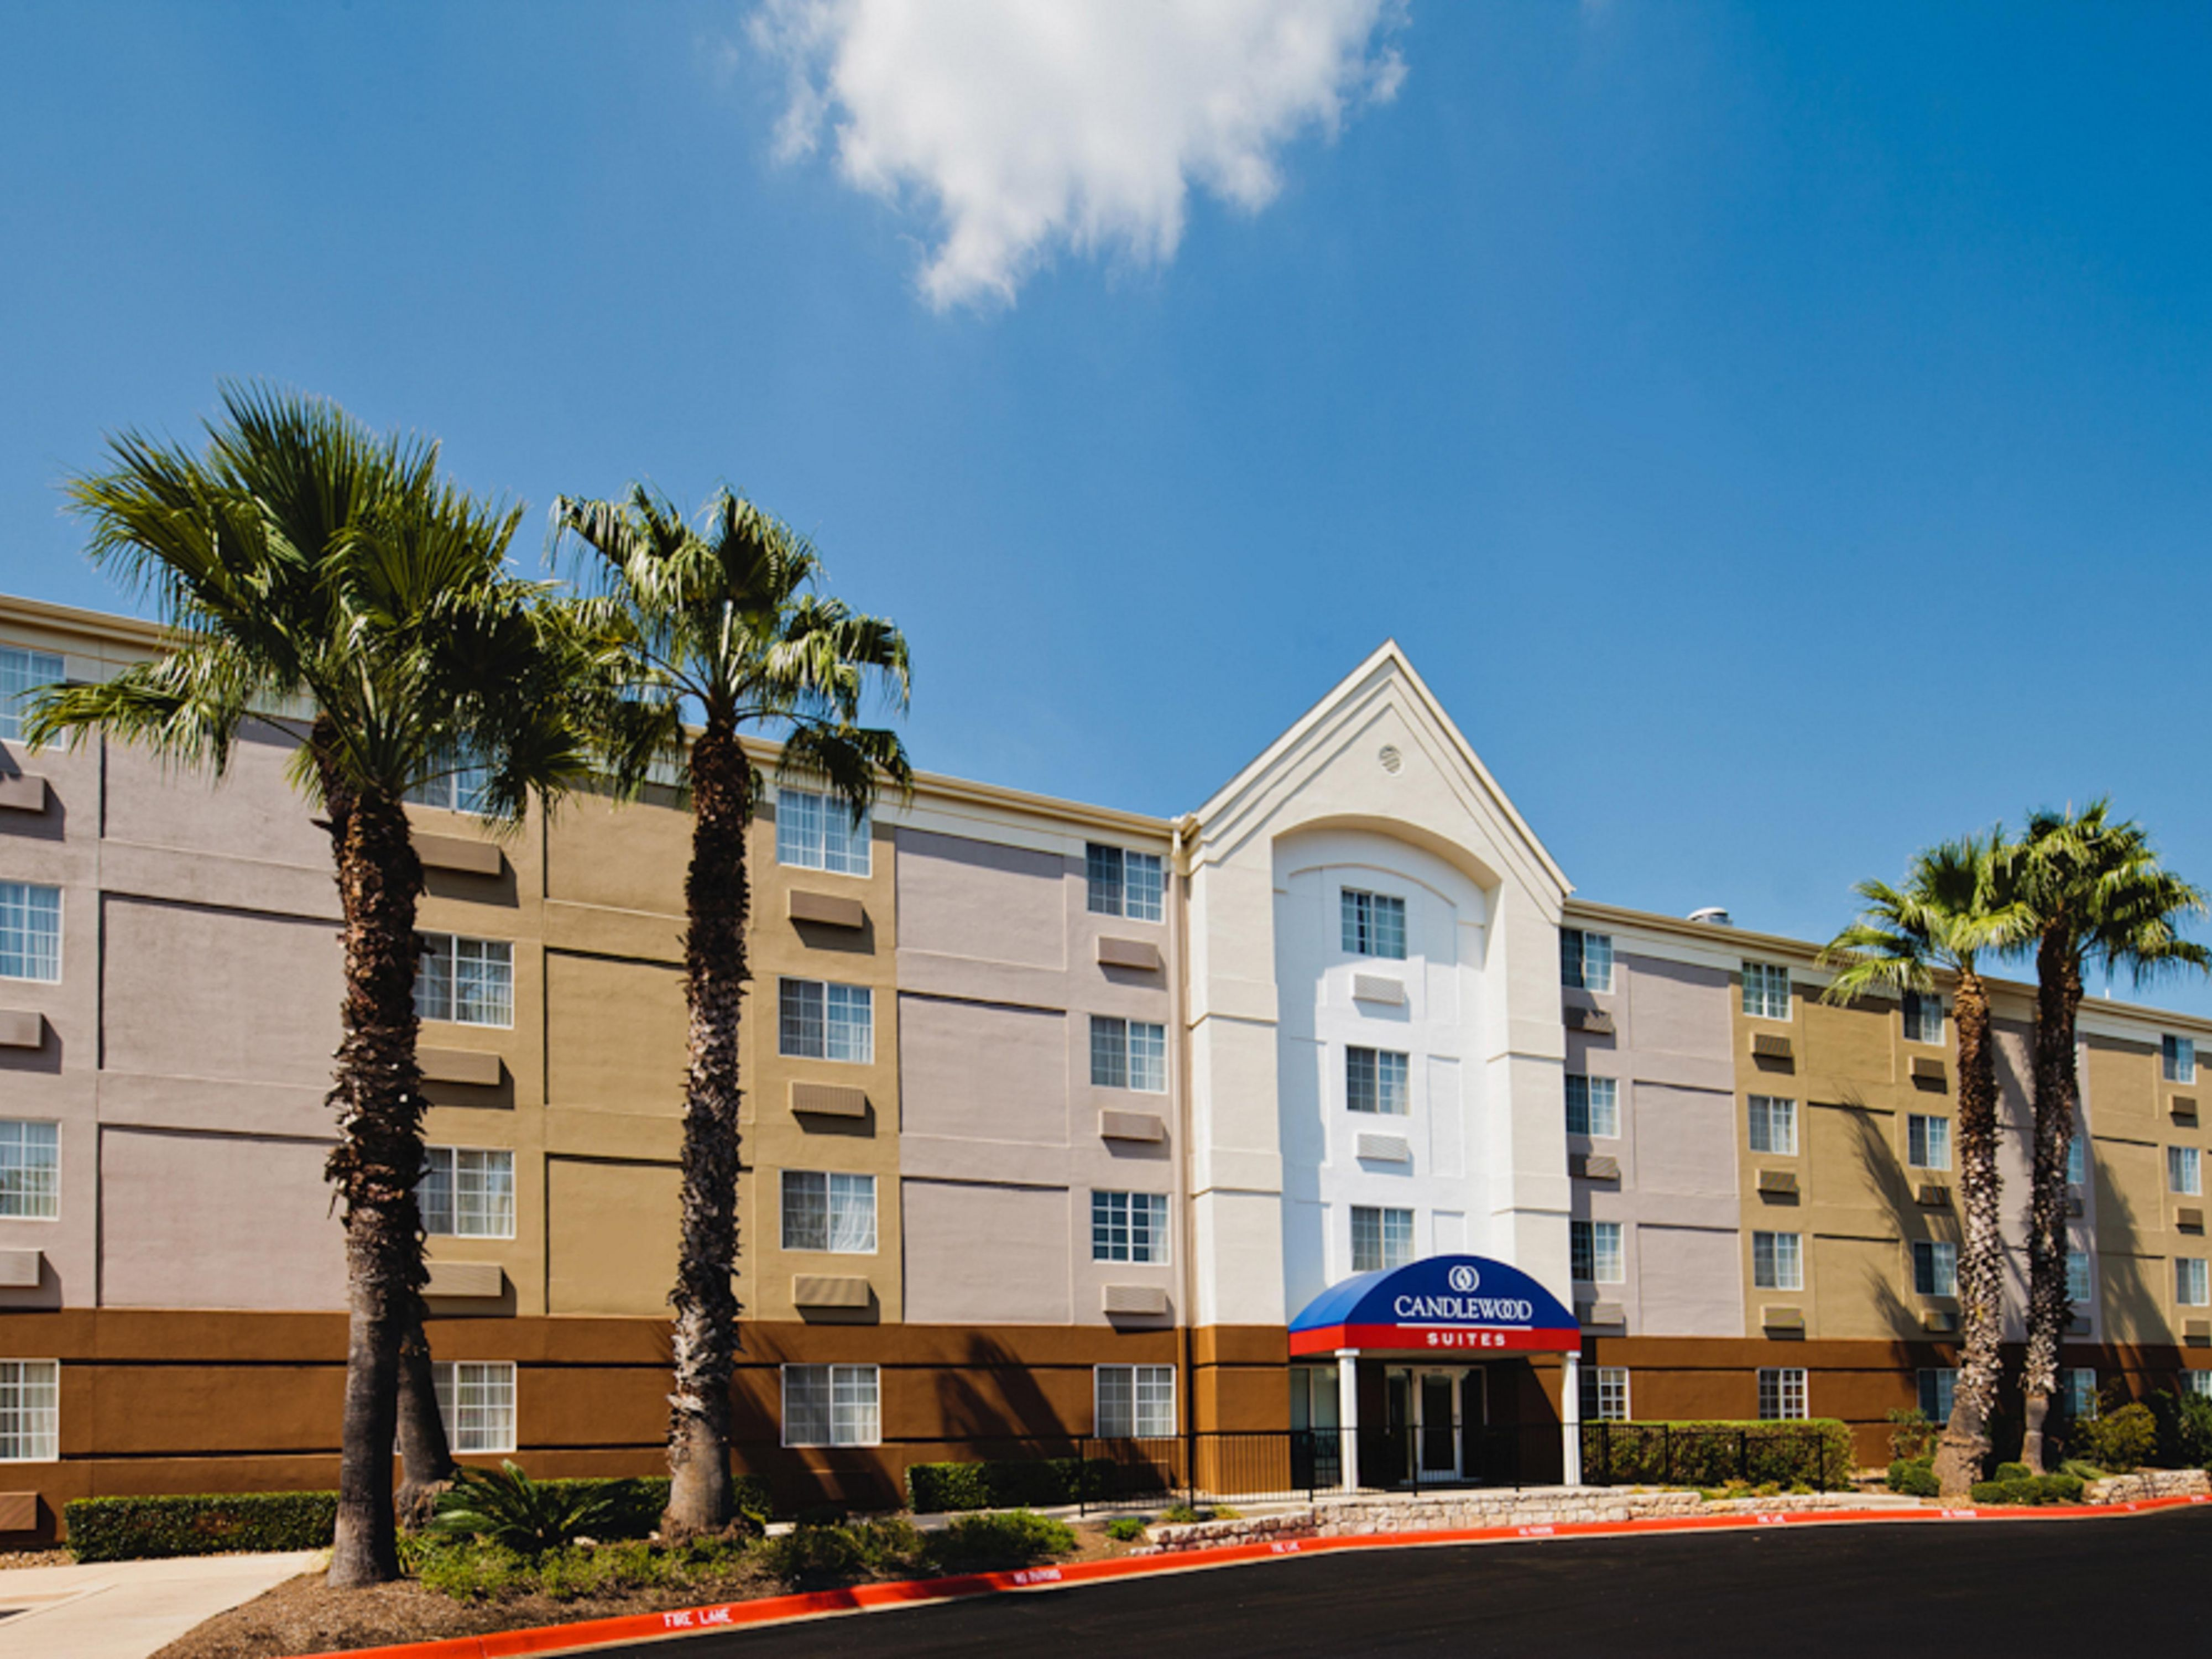 Extended Stay Hotels In San Antonio Candlewood Suites